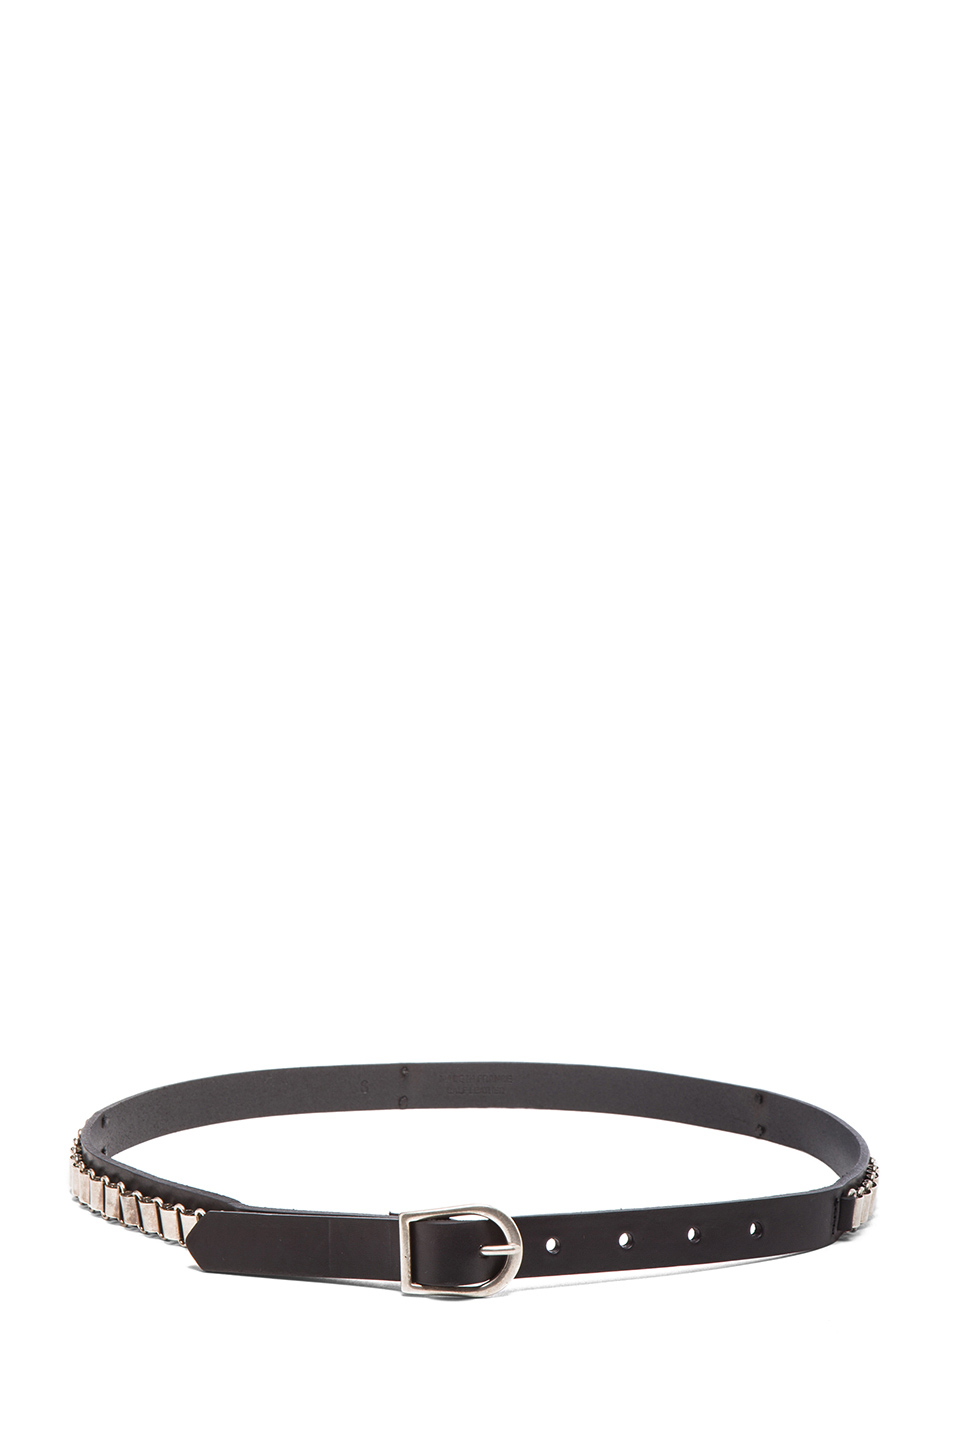 Isabel Marant|Memphis Calfskin Leather Belt in Black & Silver